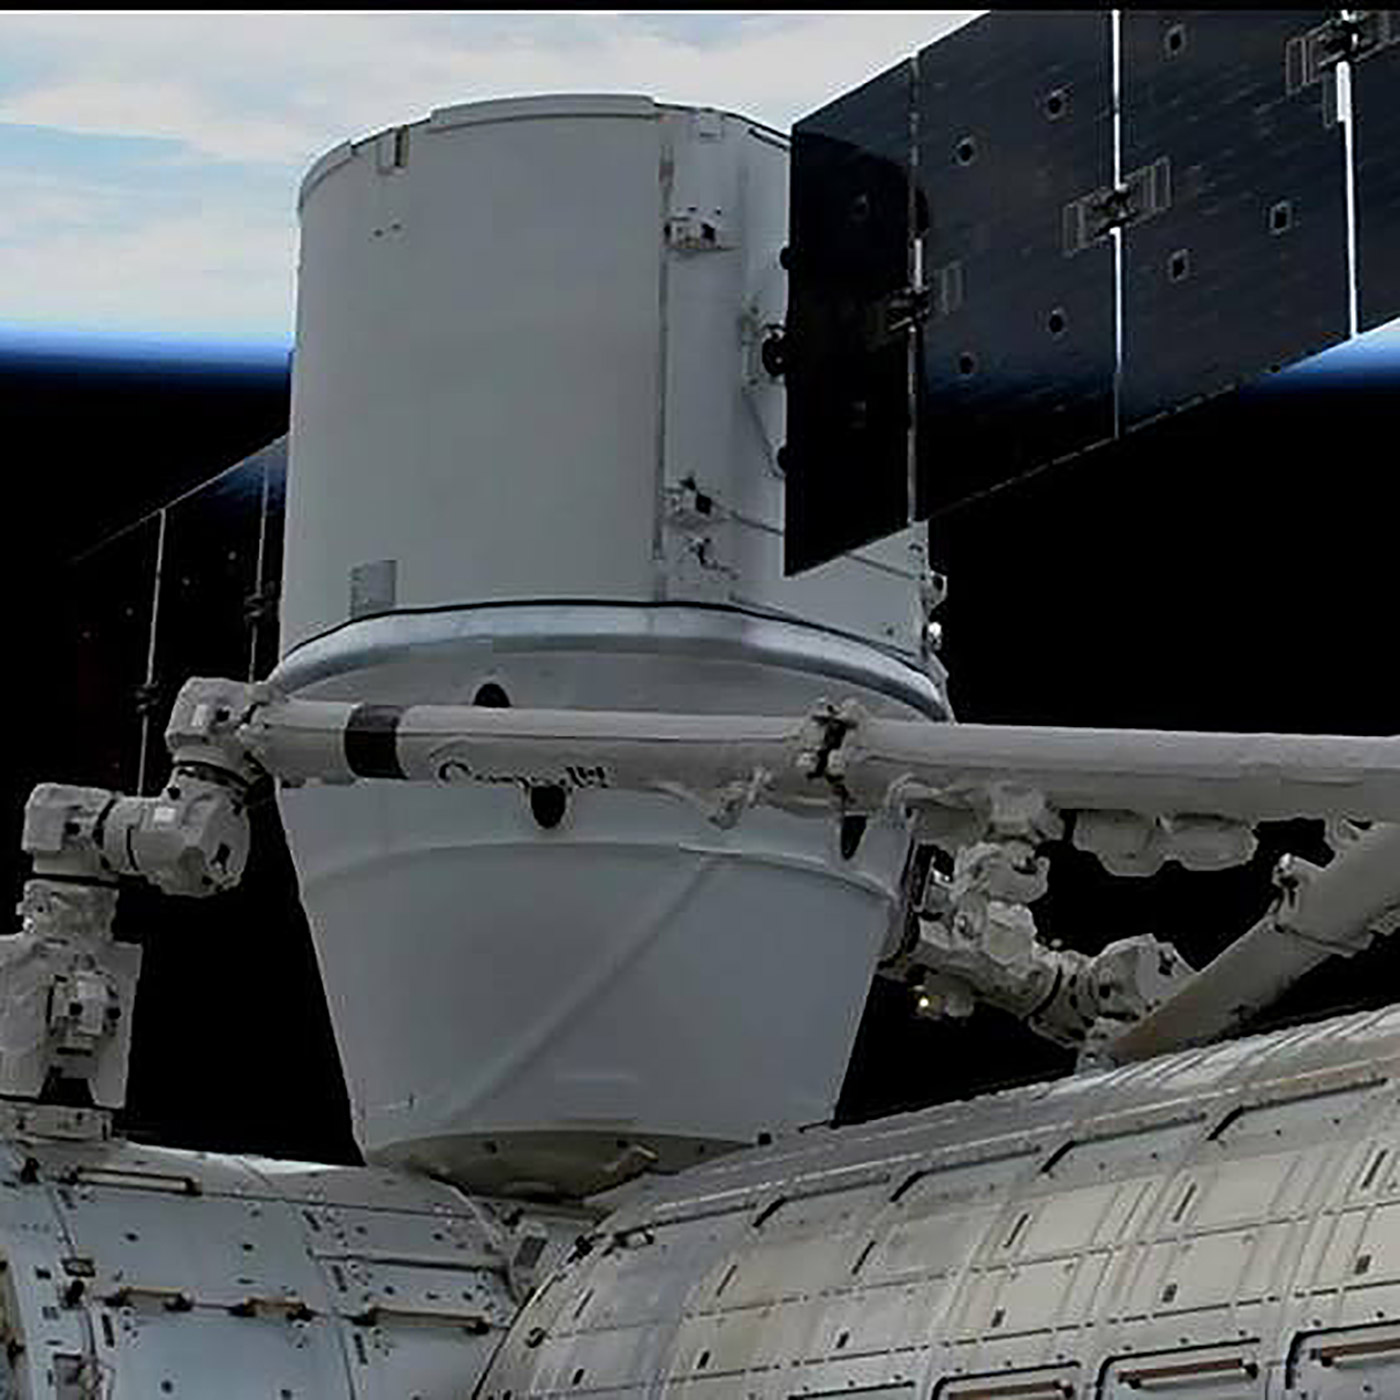 crs13 dragon attached